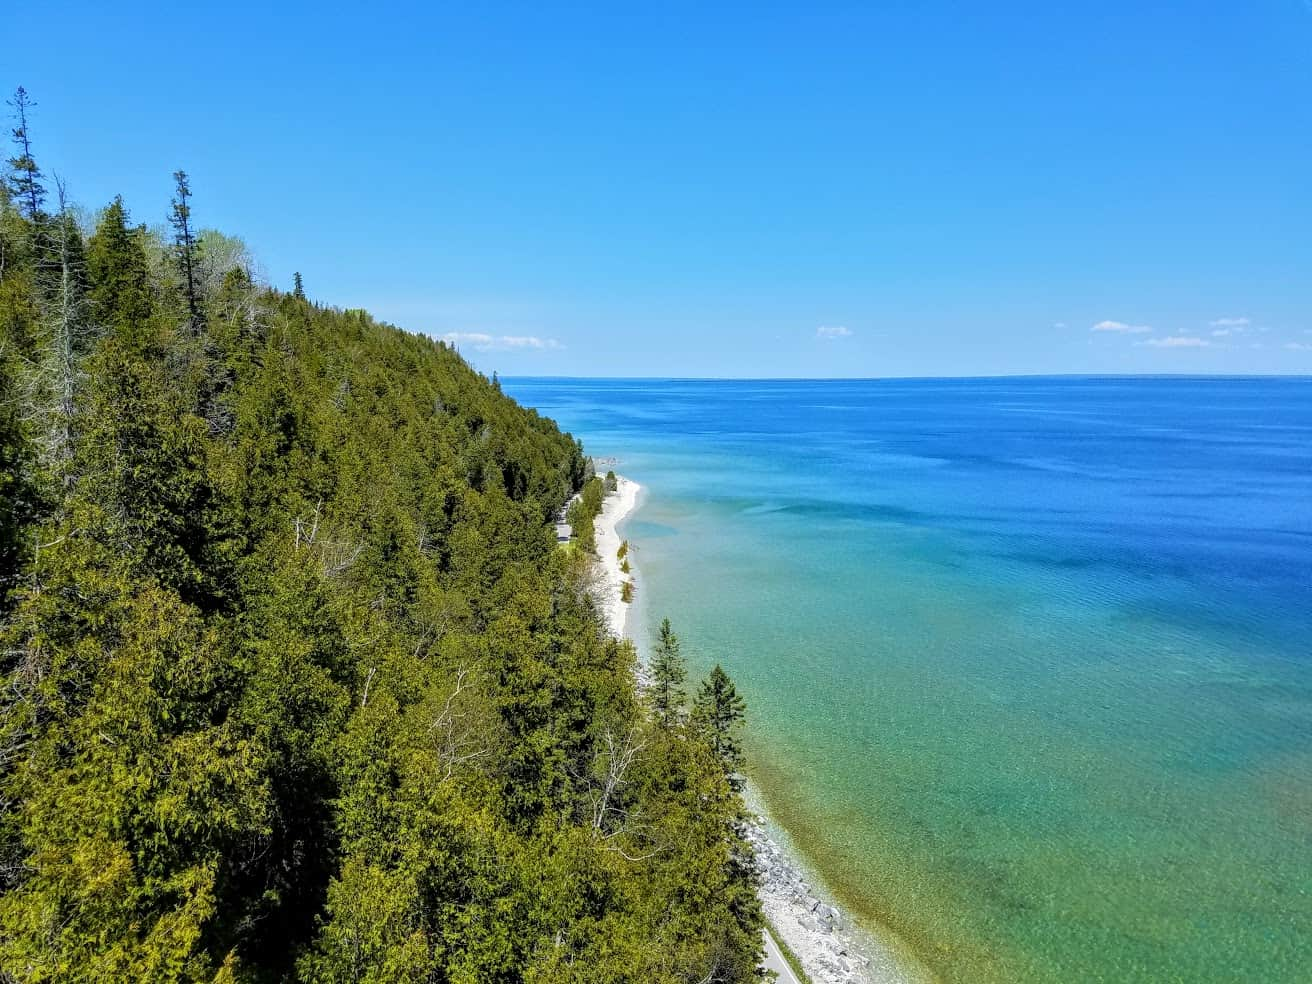 Here's What Makes The Awesome Mitten Happy In Michigan In Honor Of The International Day Of Happiness - The Awesome Mitten